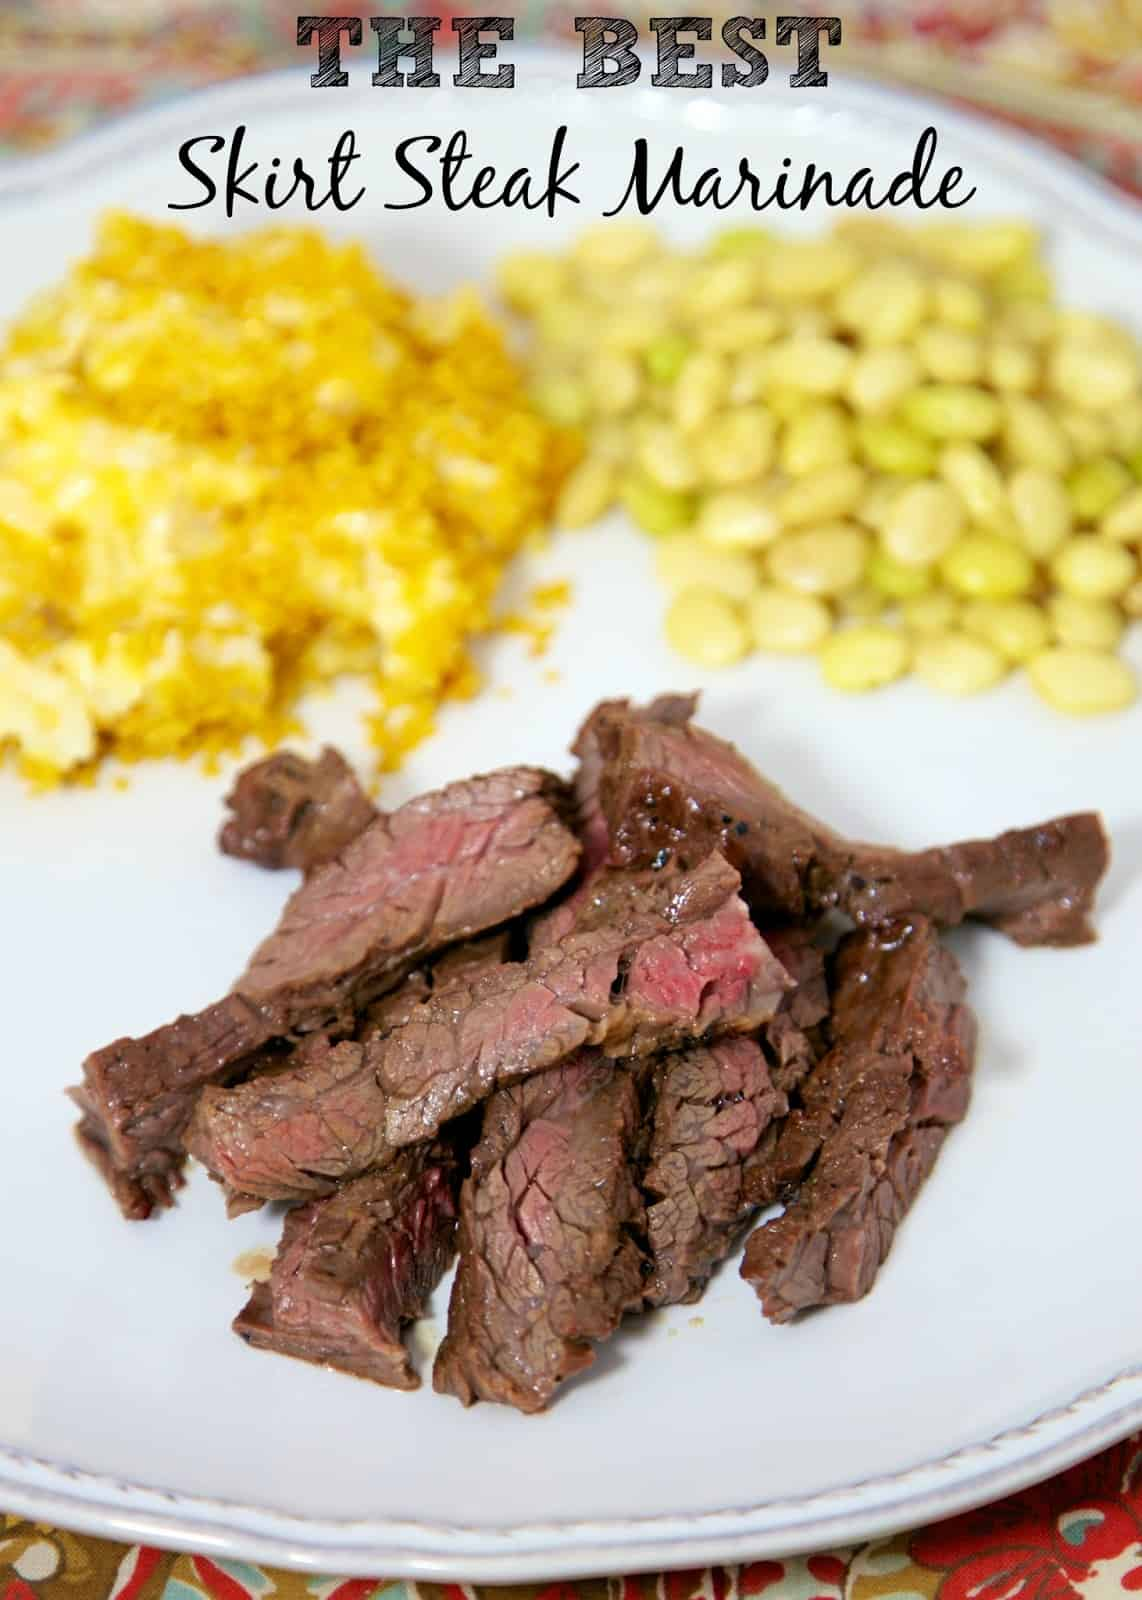 The BEST Skirt Steak Marinade - if you've never made skirt steak you are missing out! Inexpensive and so flavorful! Soy sauce, dijon mustard, red wine vinegar, Worcestershire sauce, olive oil, molasses, garlic and onion powder. Let steak marinate overnight for maximum flavor. Our favorite steak recipe!! #grilling #steak #marinade